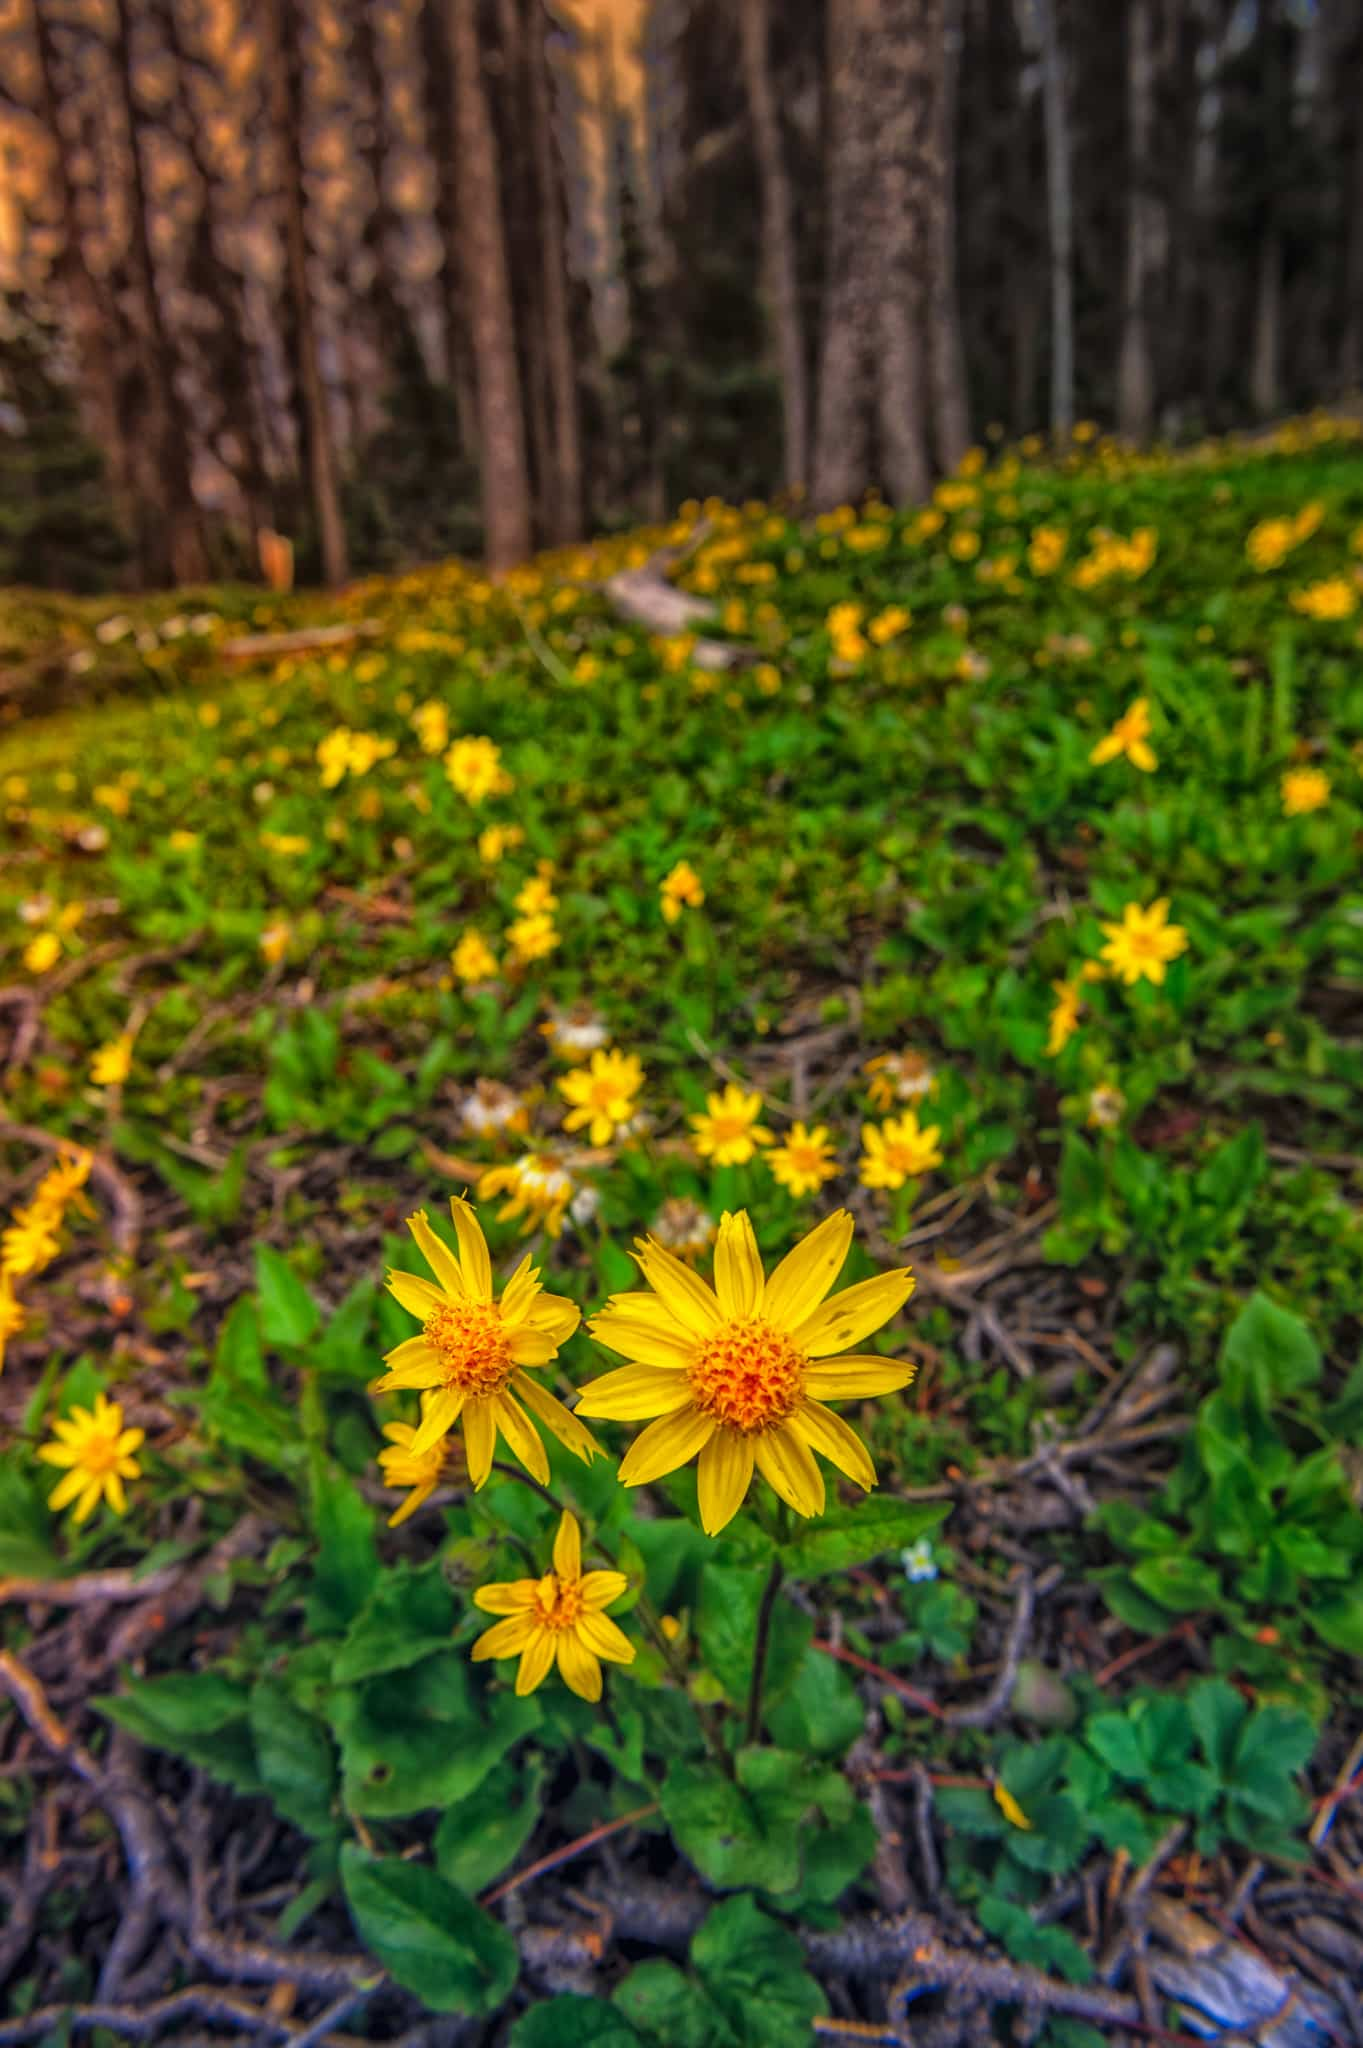 This Heart-Leaf Arnica is growing along CO 149 near Slumgullion Pass. Due to the Spruce Bark Beetle infestation, wide swaths of forest on either side of the road have been cleared, creating an ideal environment for wildflowers.